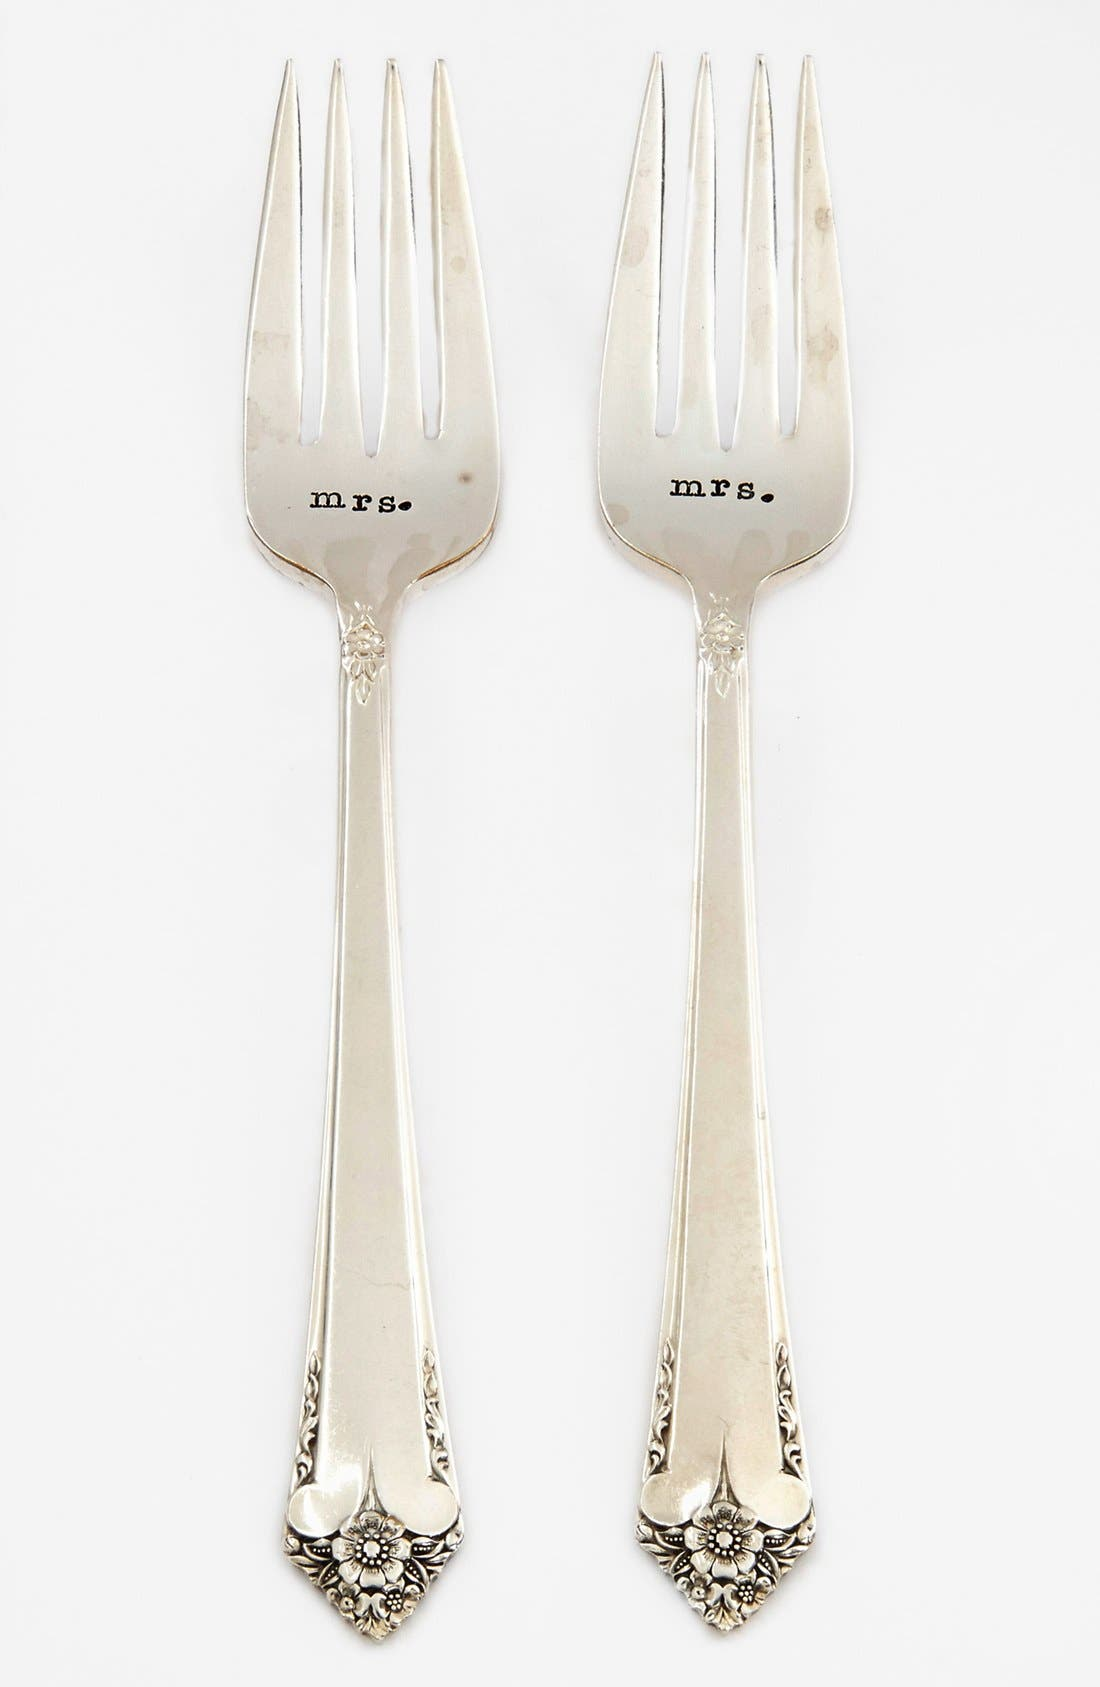 Alternate Image 1 Selected - Milk and Honey Luxuries 'Mrs. & Mrs.' Vintage Wedding Forks (Set of 2)